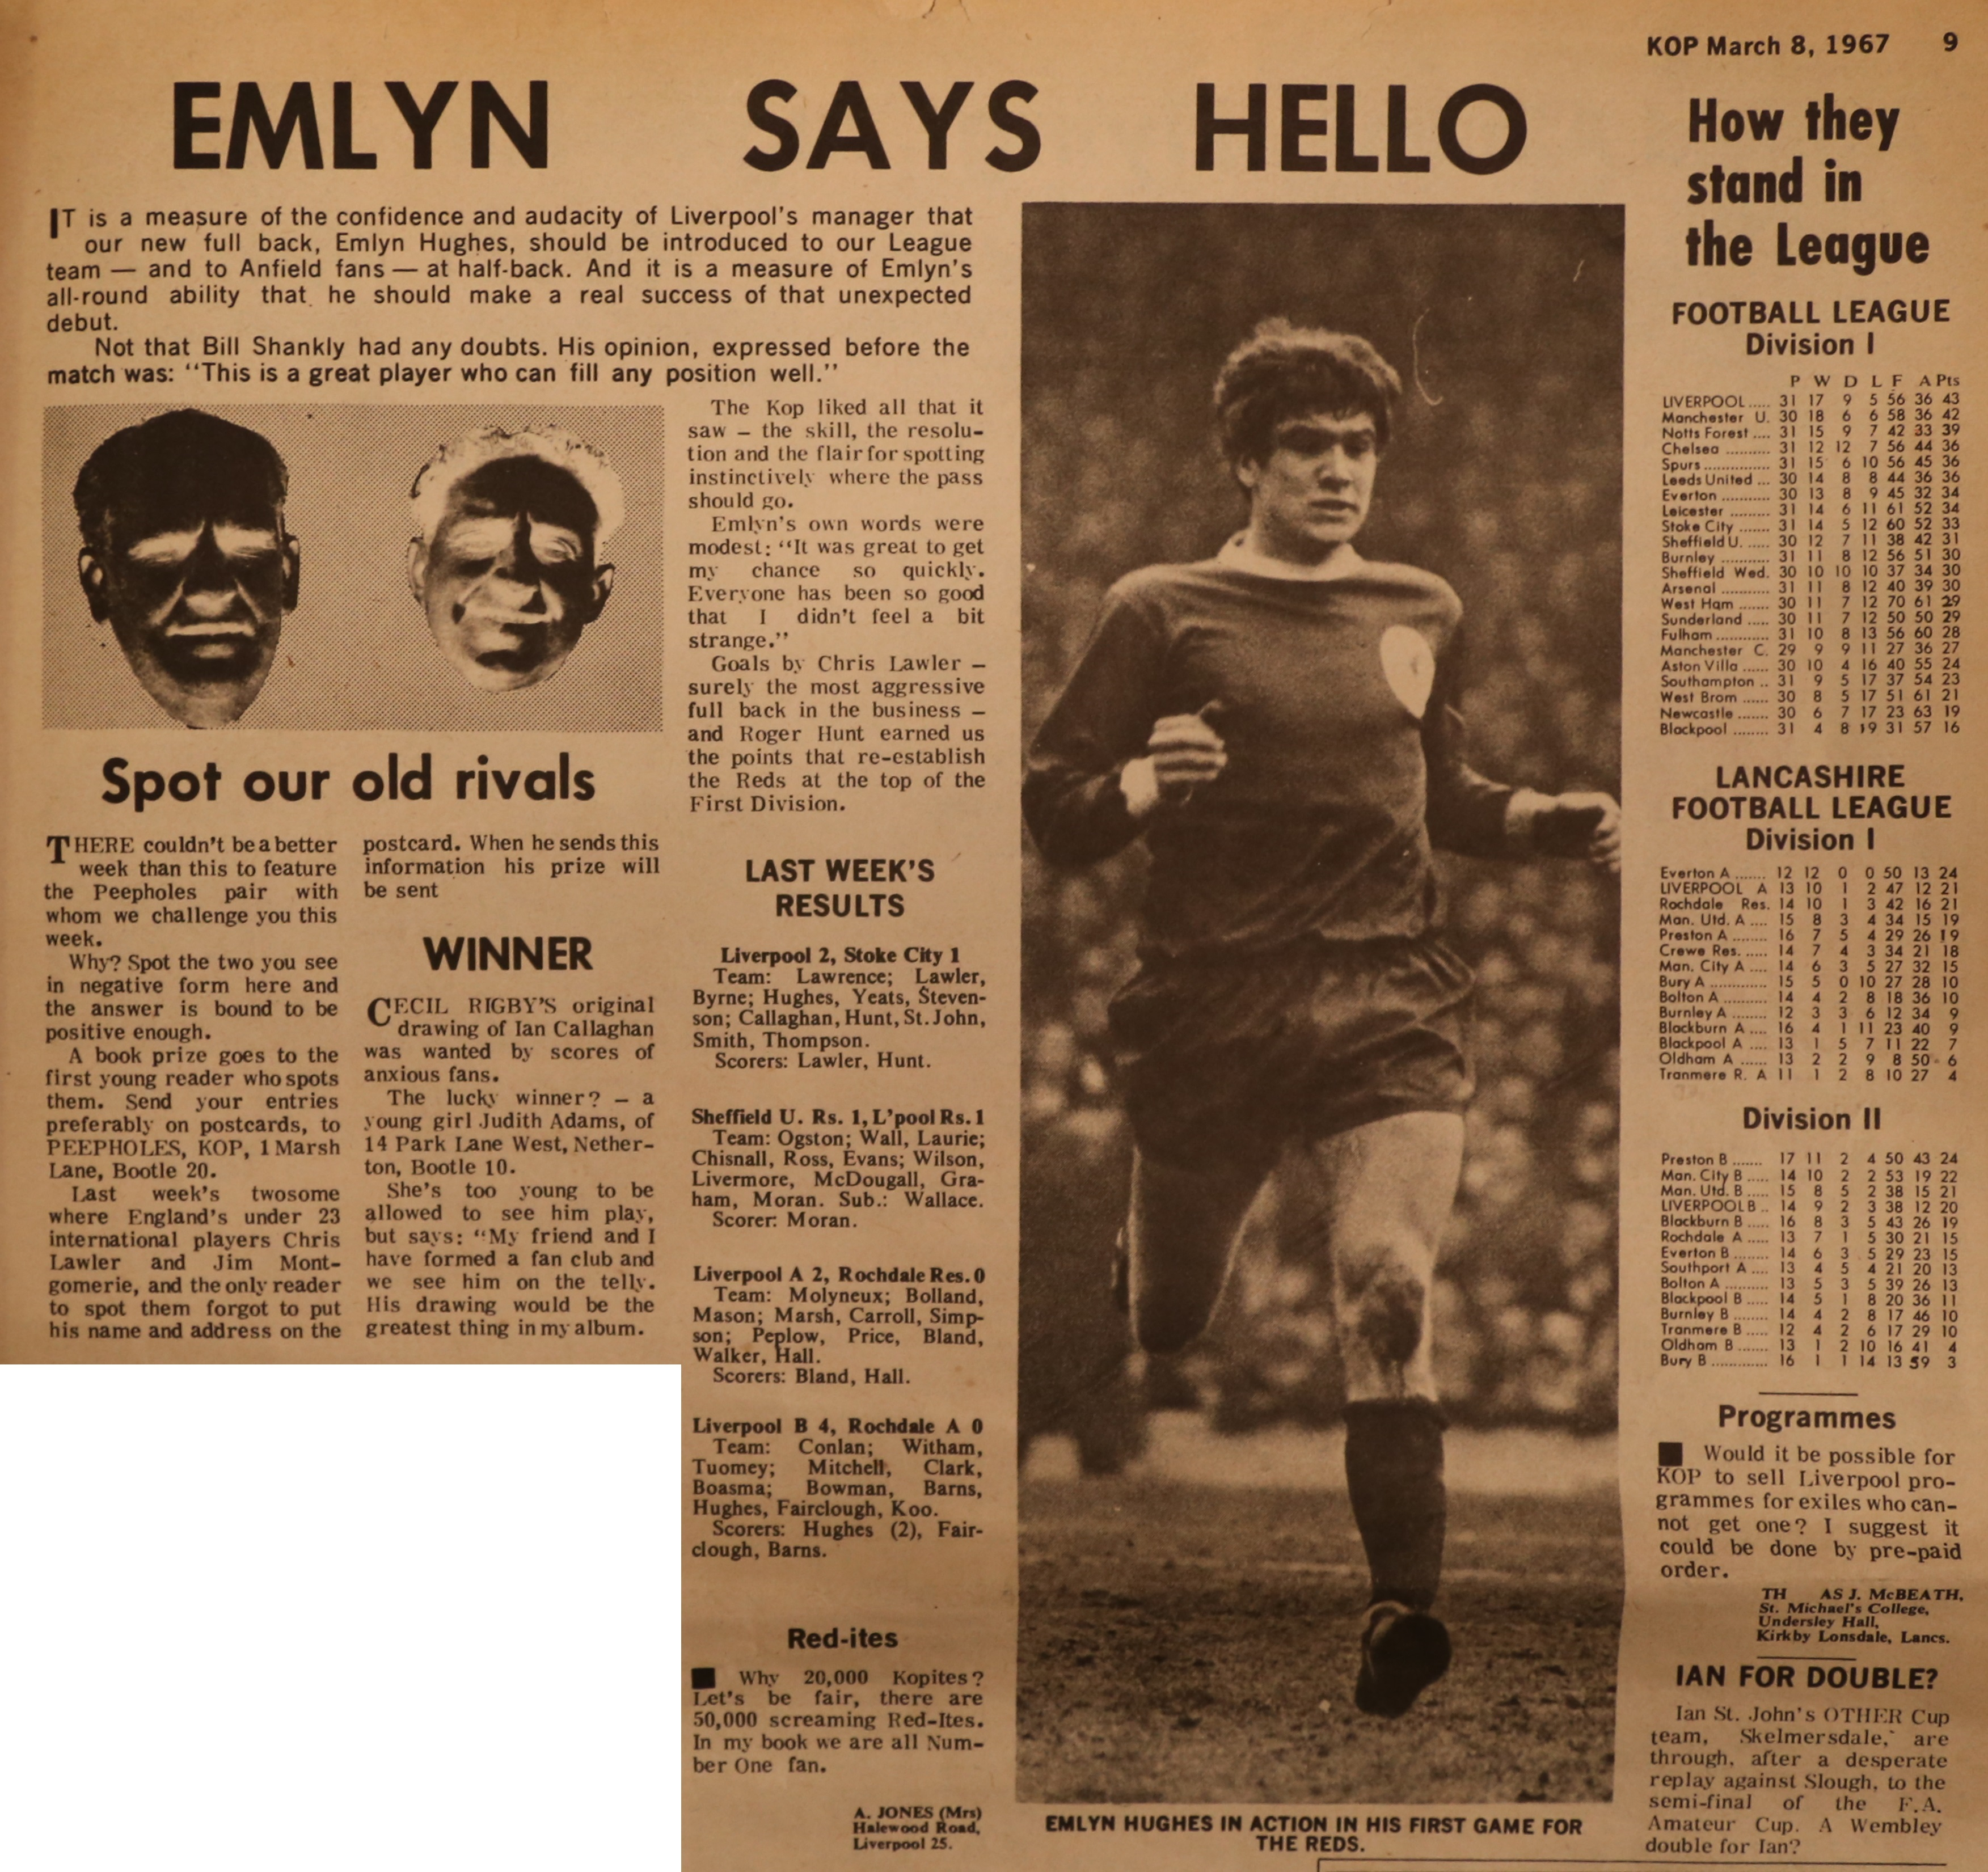 Emlyn says hello - From The Kop on 4 March 1967